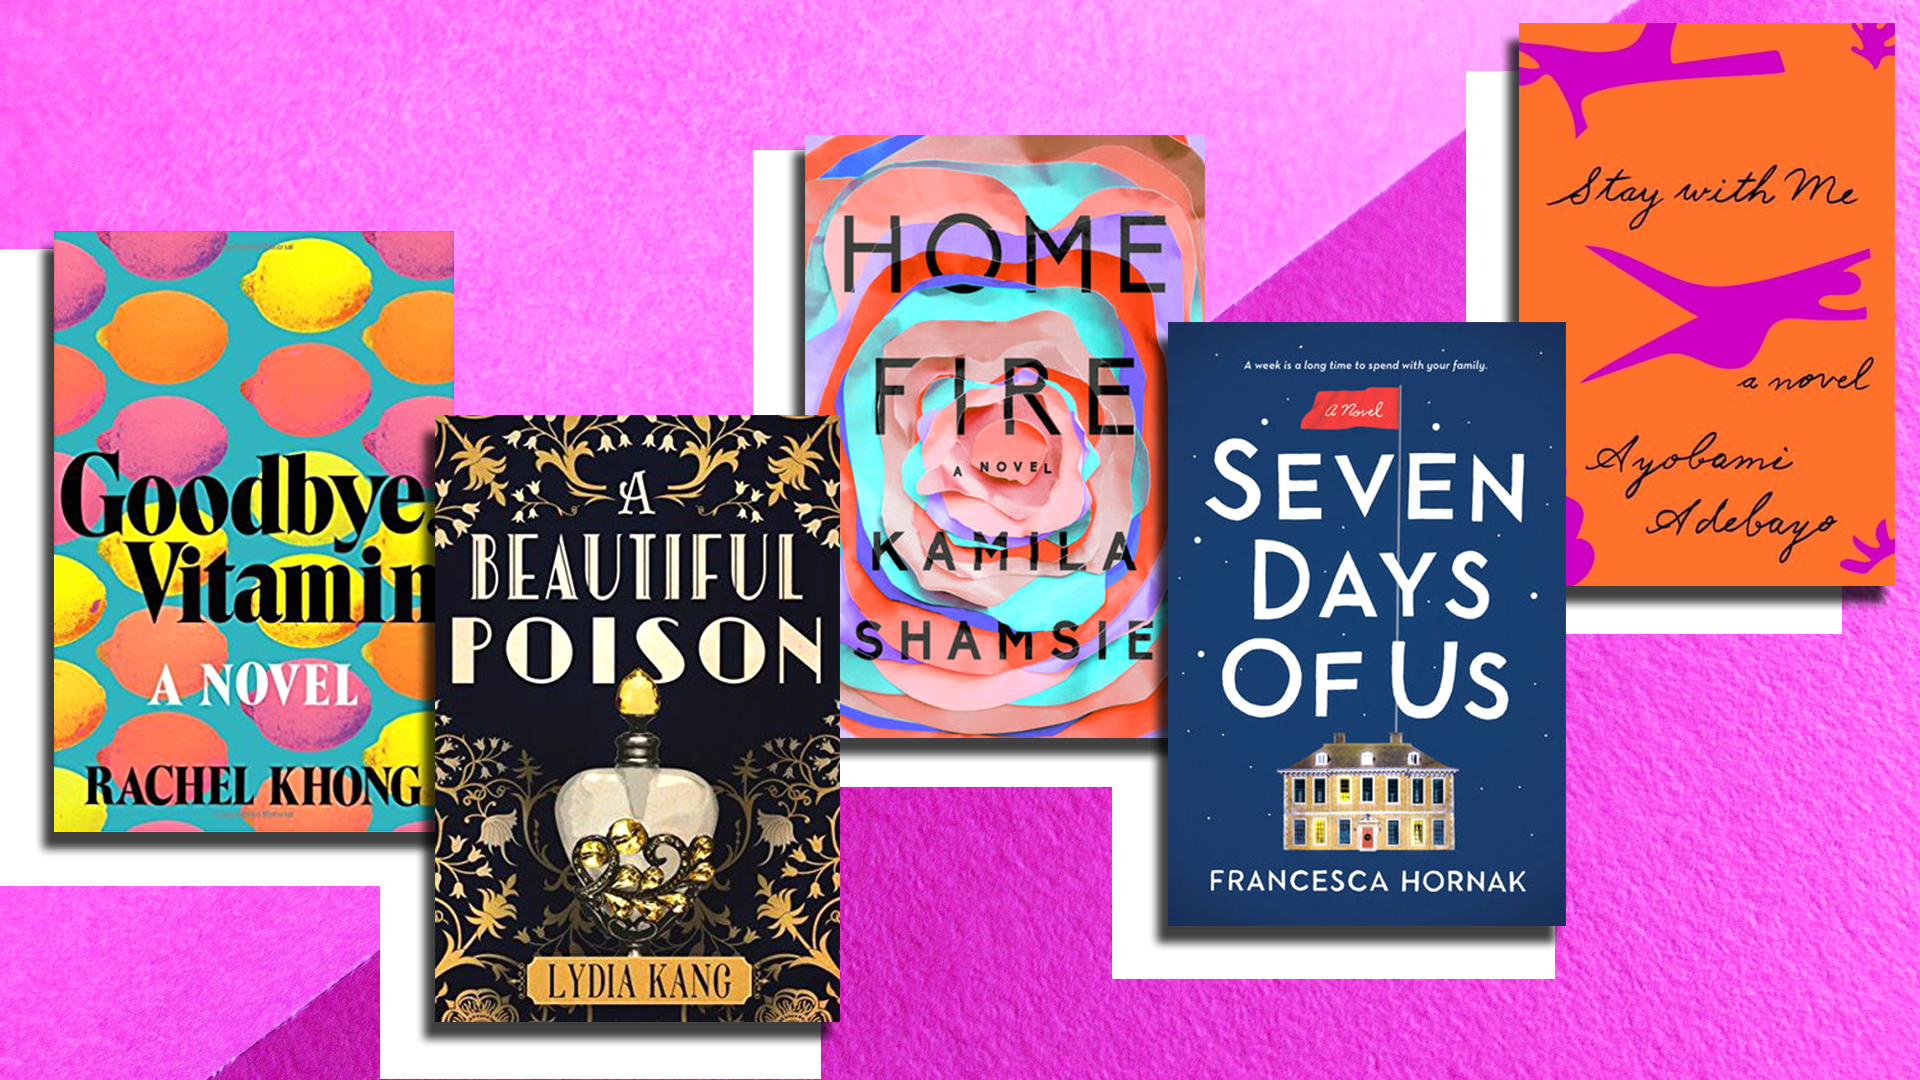 15 of the Best Books of 2017 to Curl up with This Winter